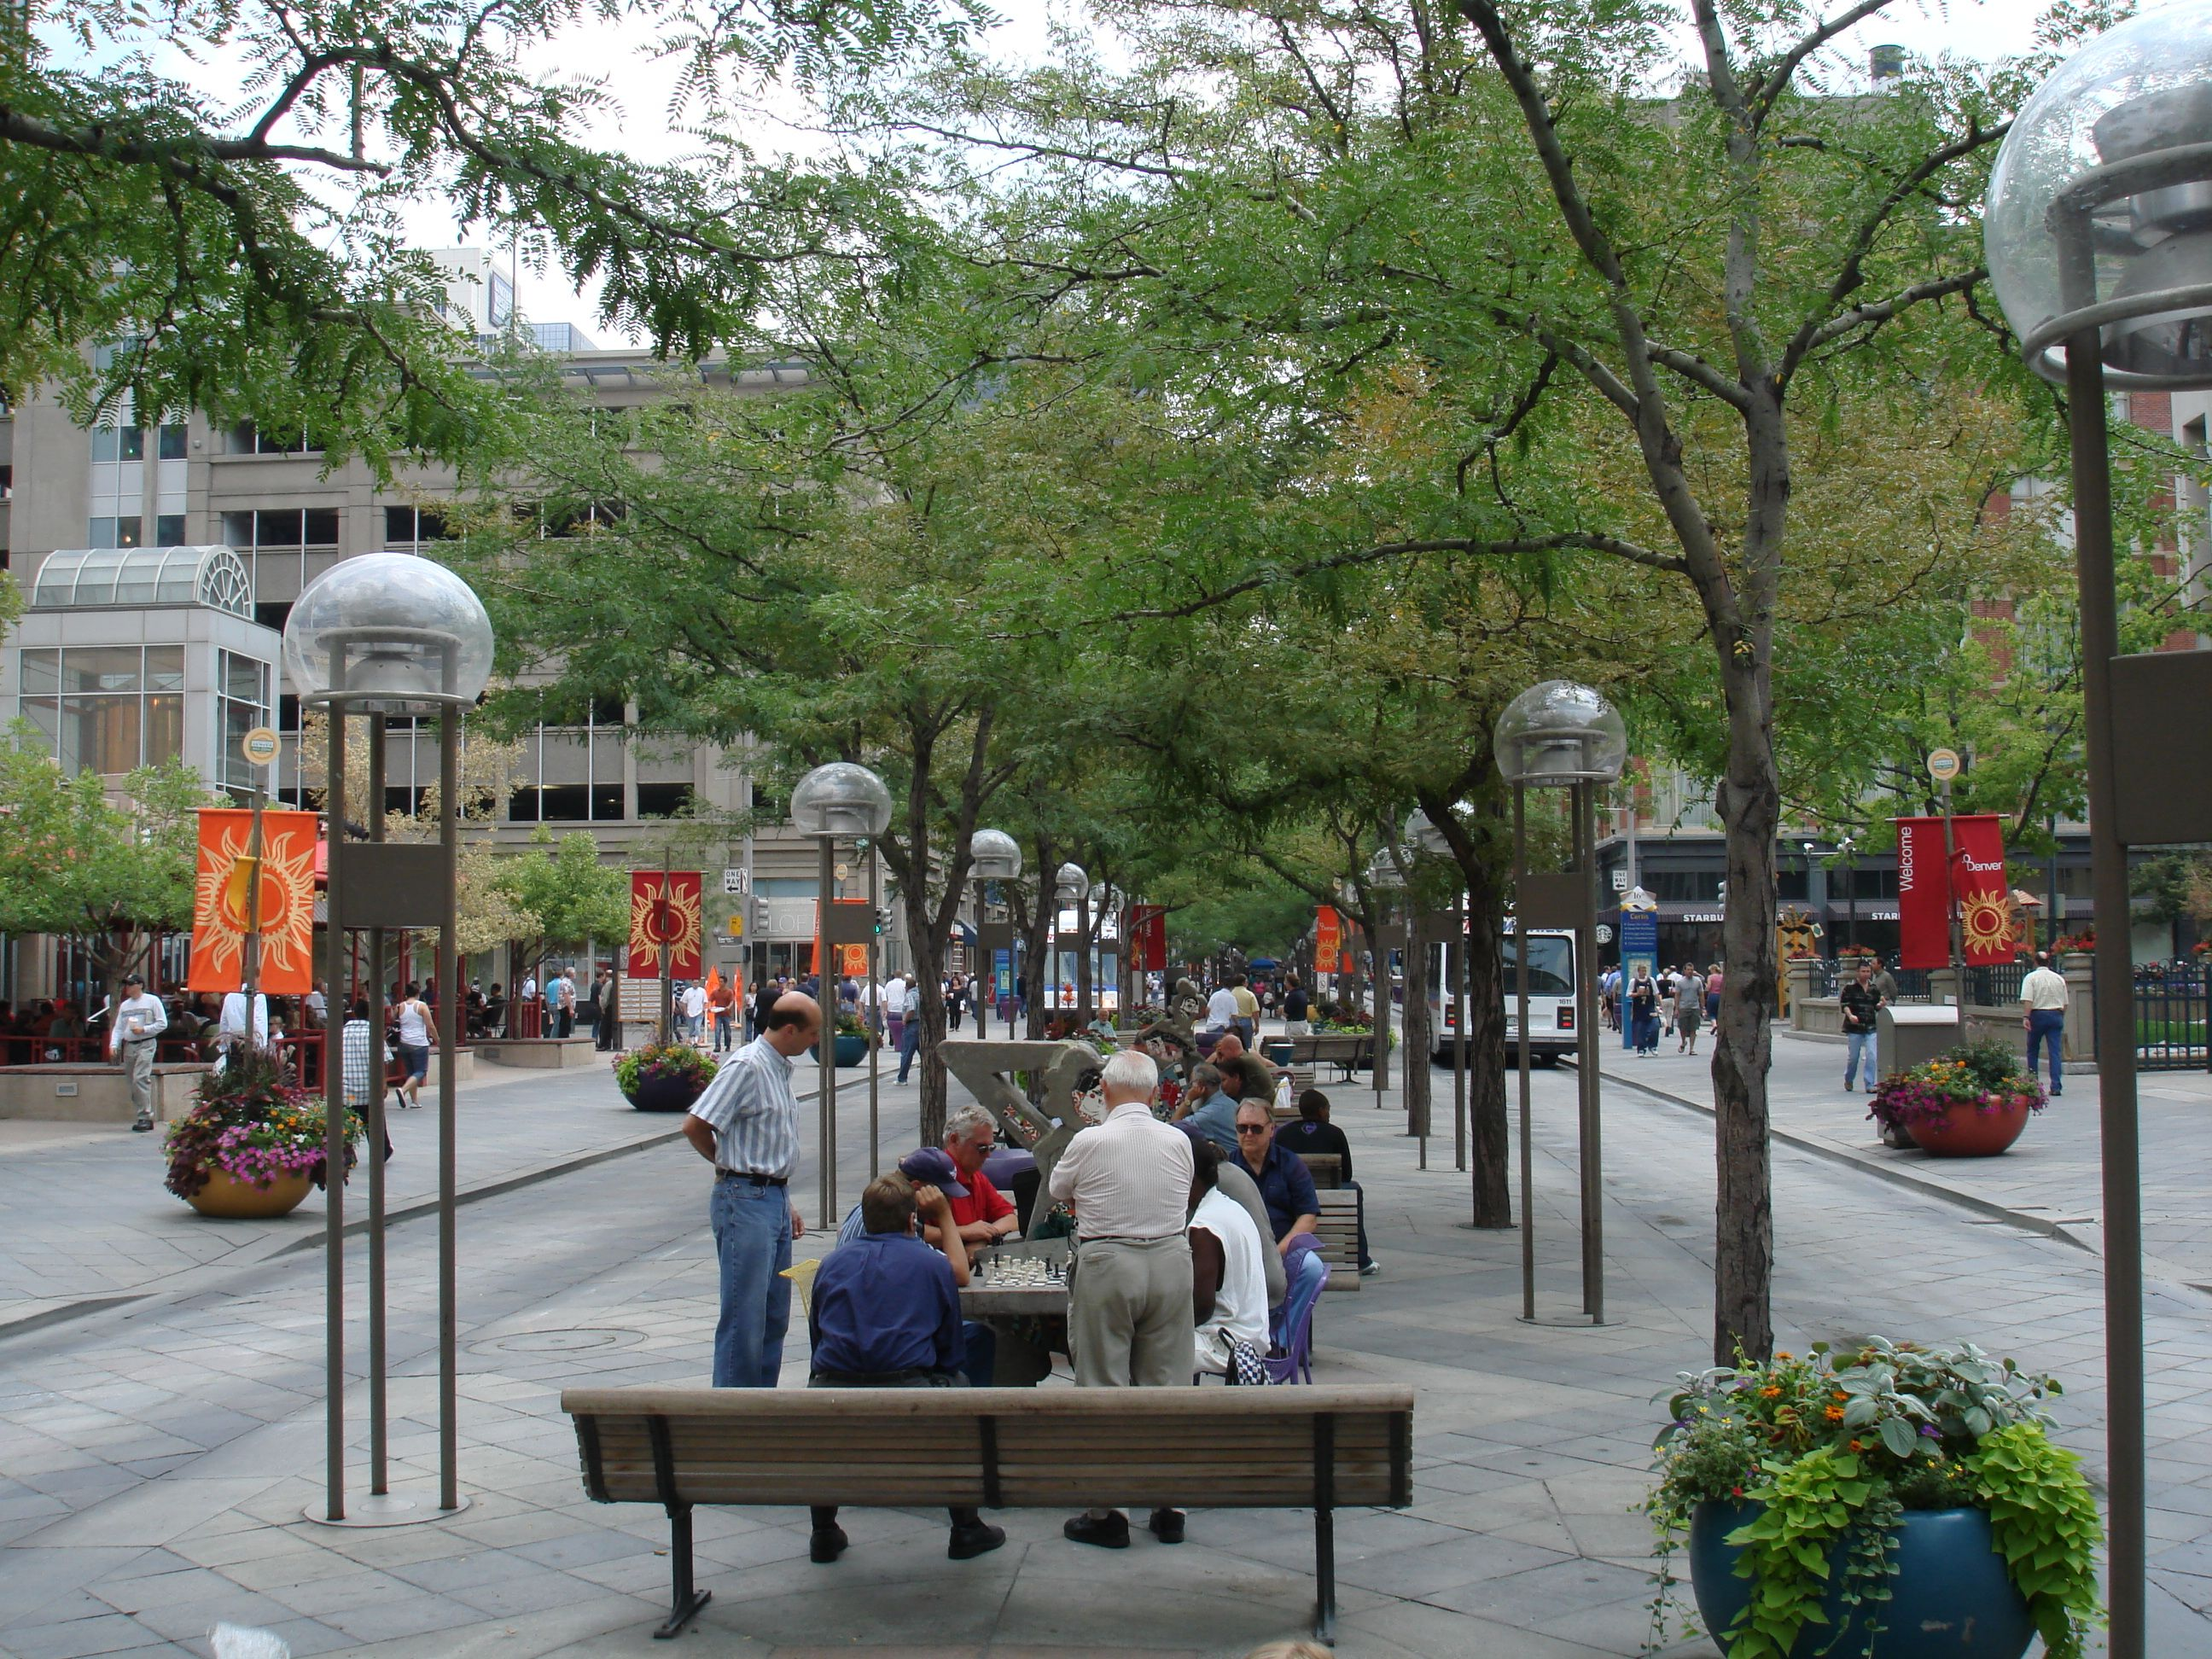 16th St Mall Denver An Outdoor Filled With S And Restaurants Tons Of People On Warm Sunny Days It Is So Vast You Really Need To T